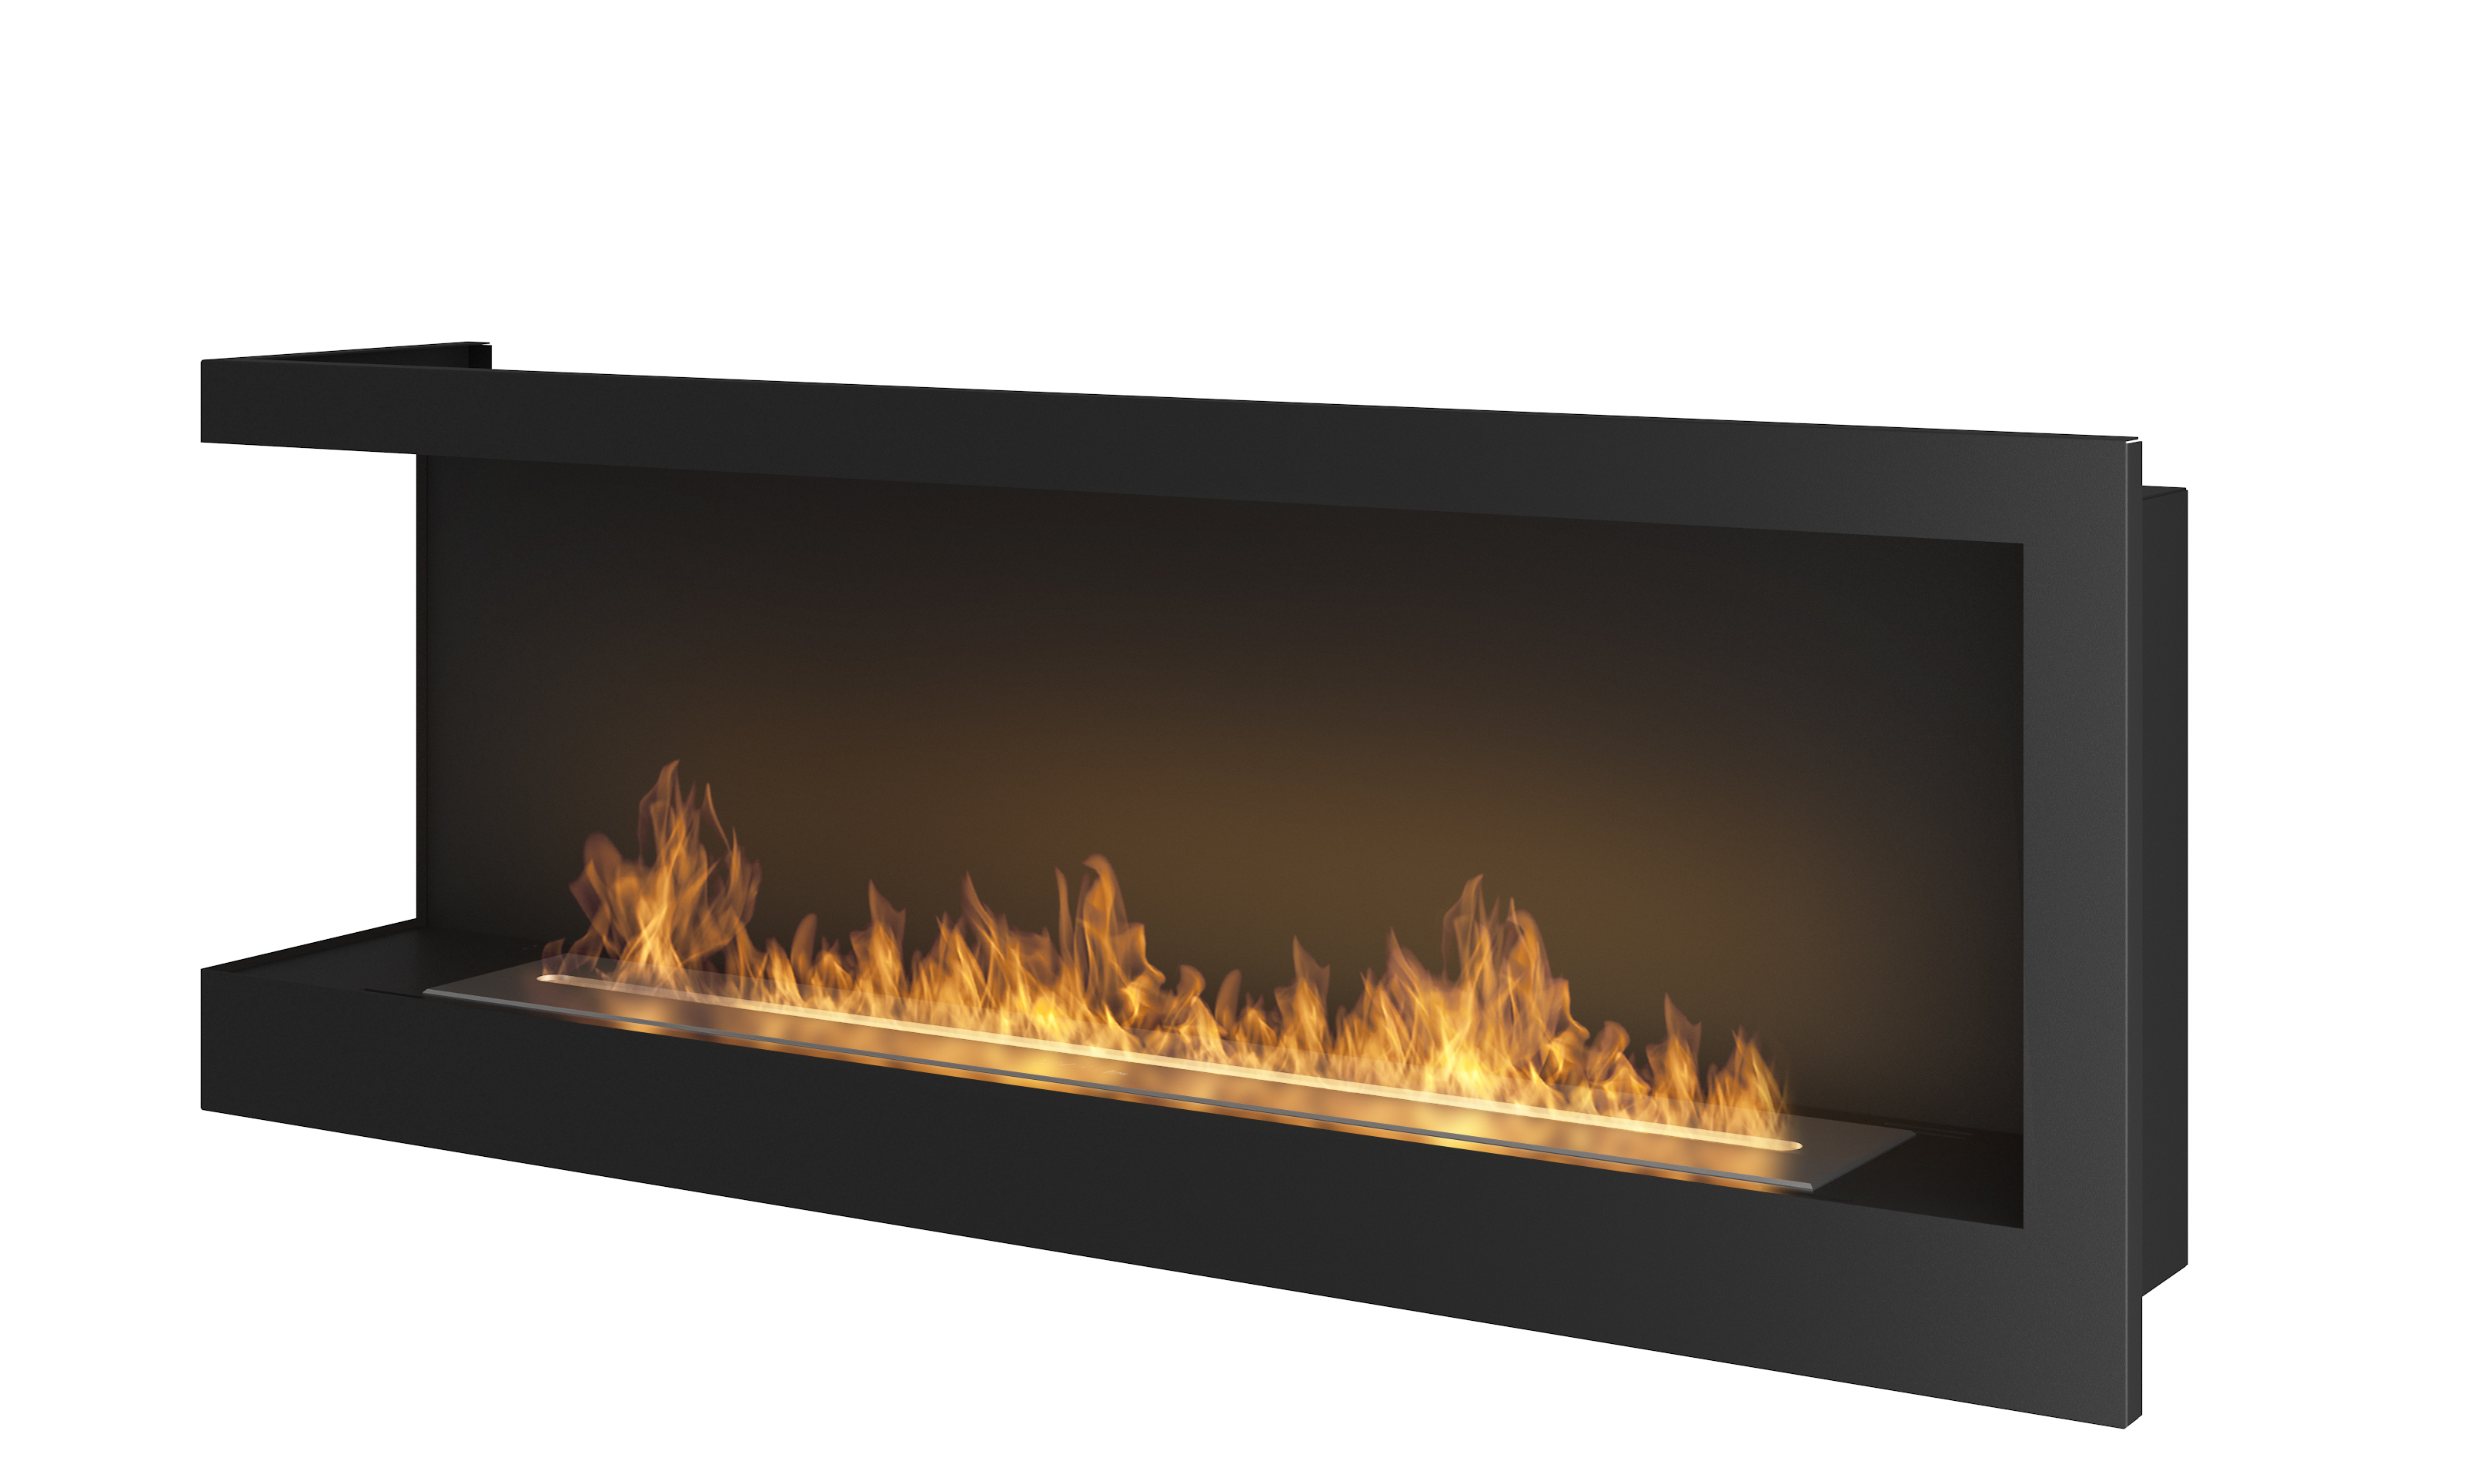 Ethanol Fireplace Simple Fire Corner 1200 L Artflame Com